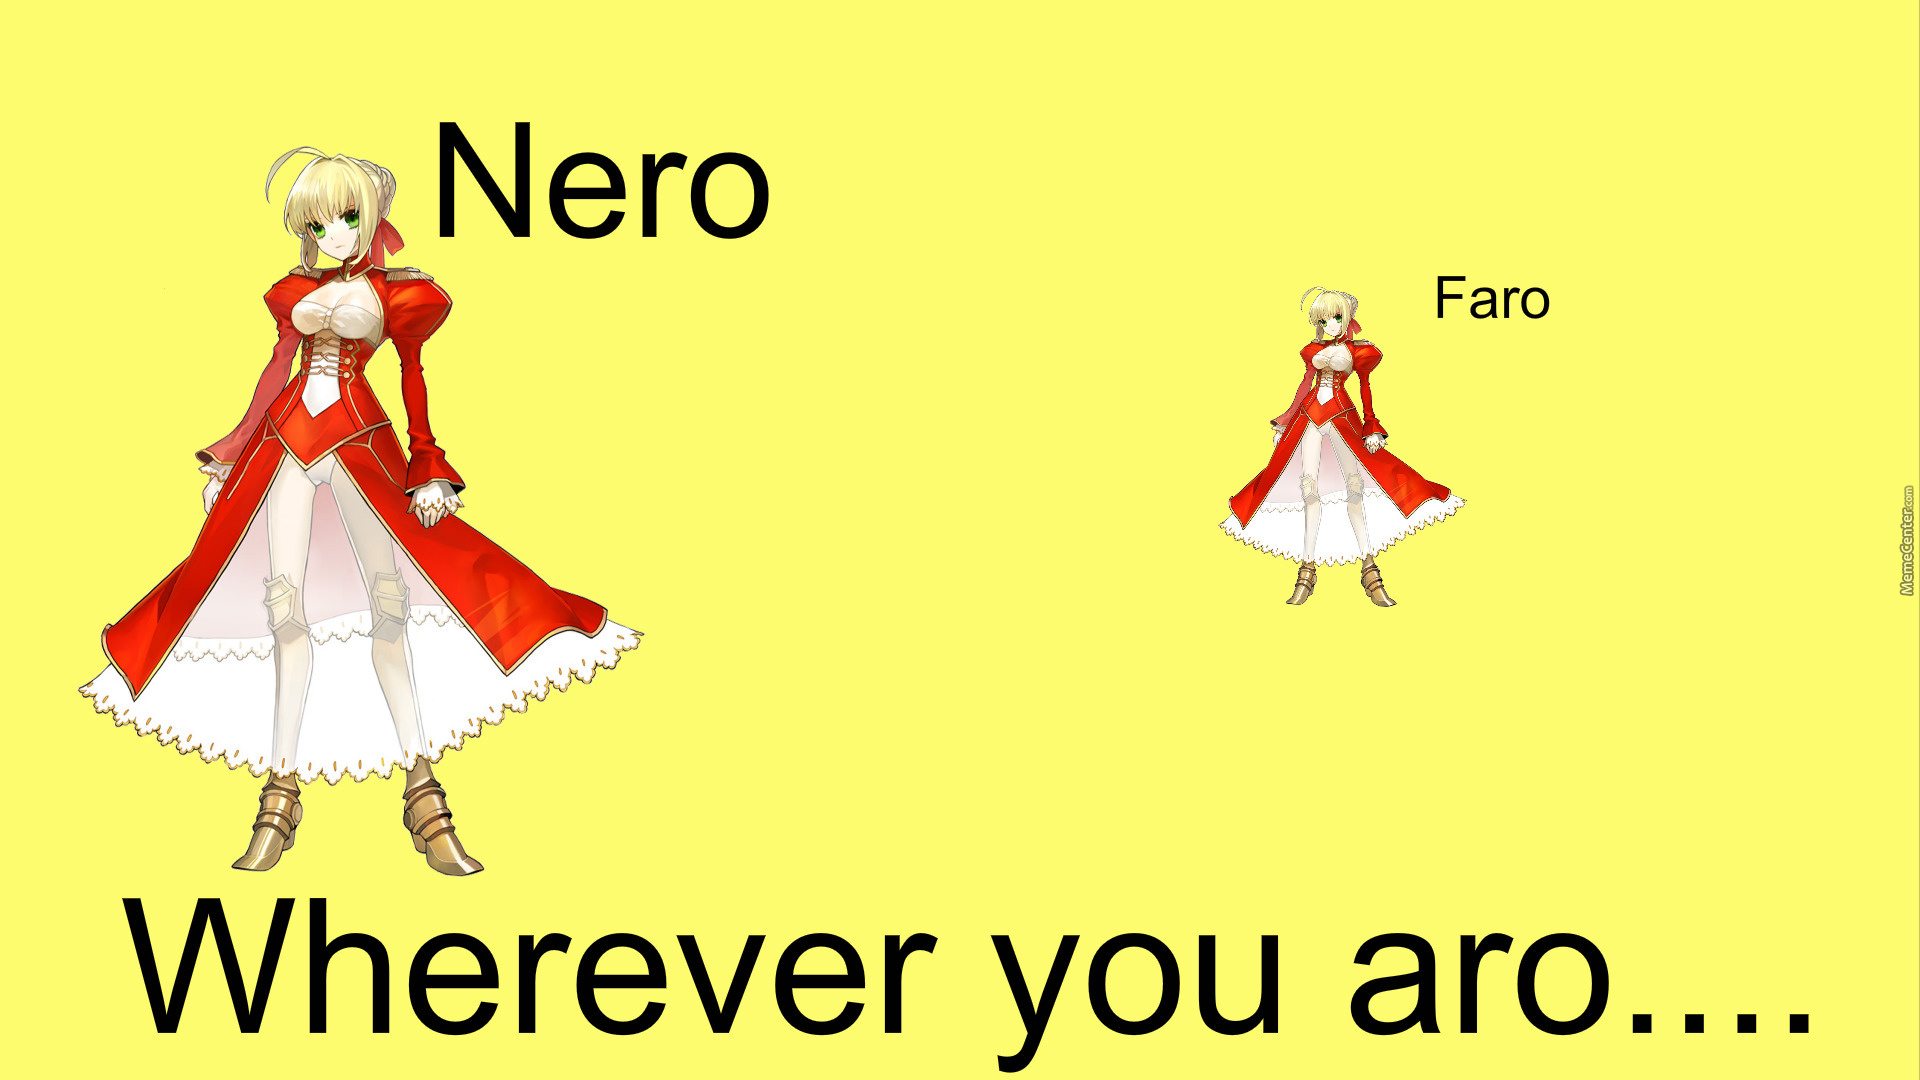 Well.. Nero Is Very Romantic Here... Isn't She?